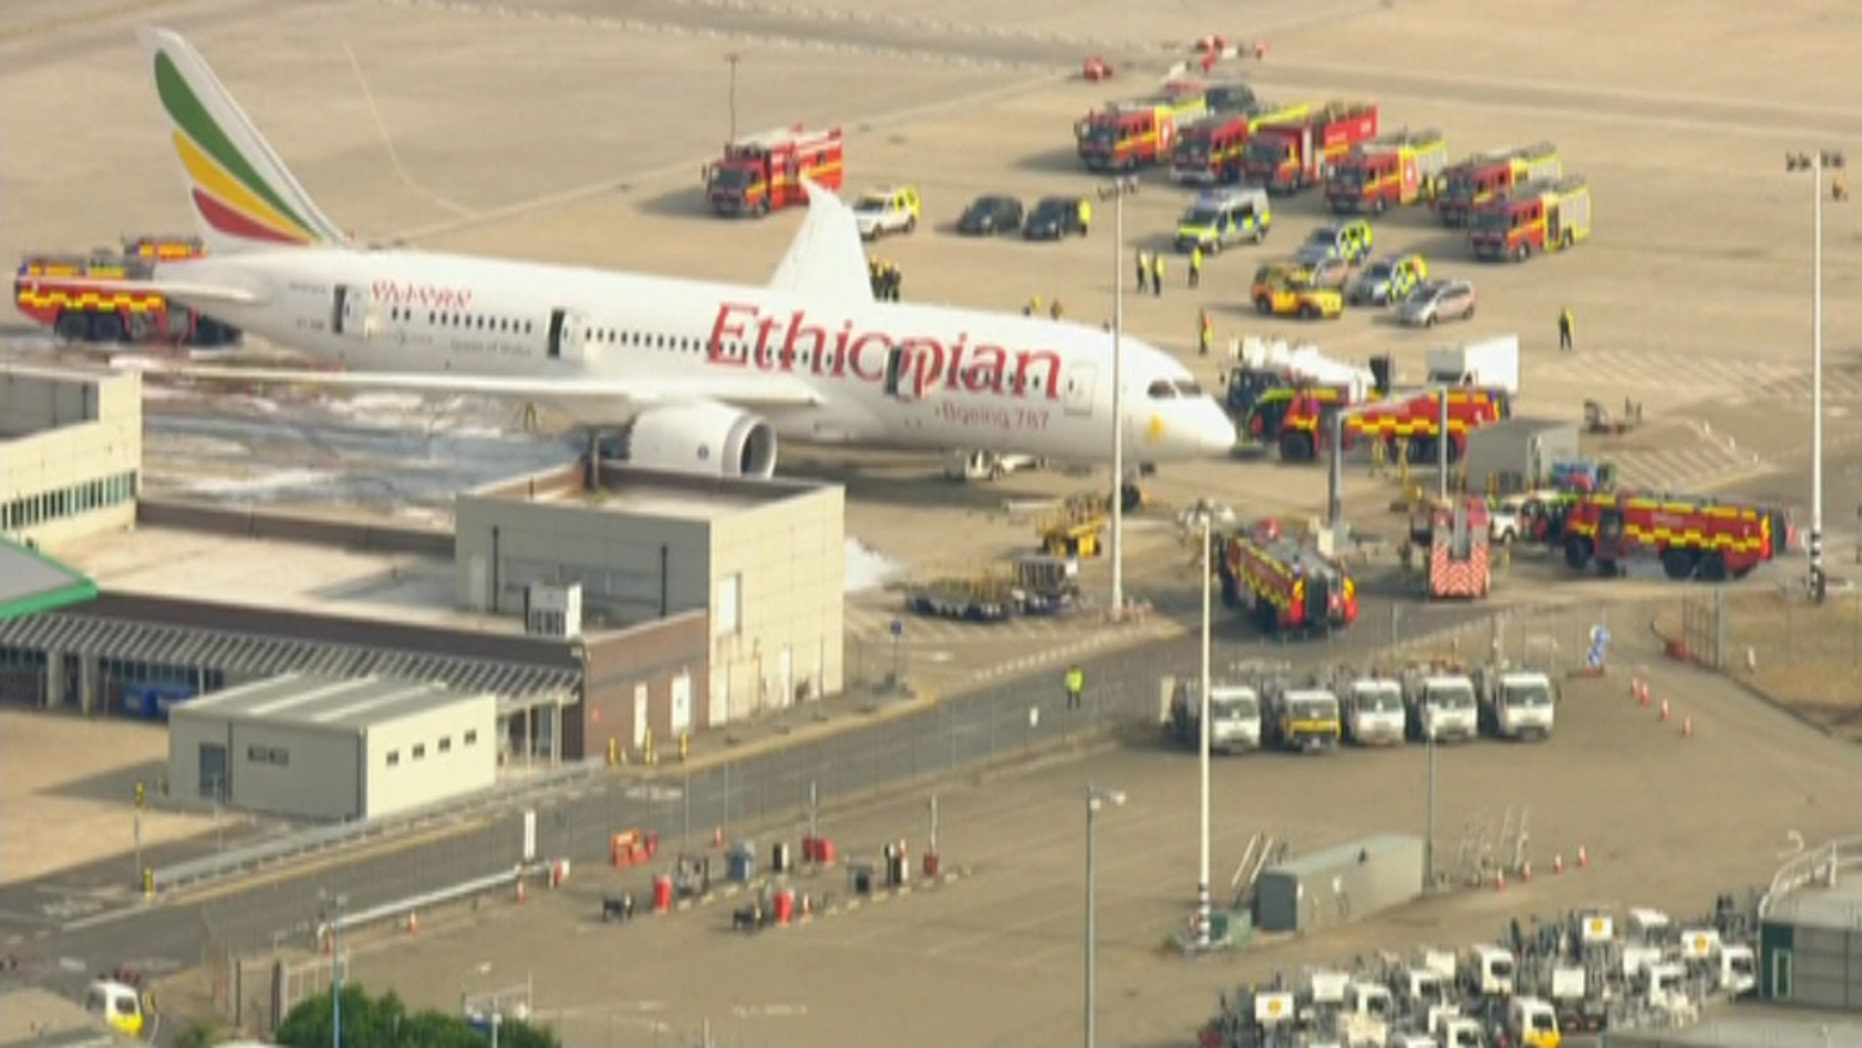 July 12, 2013 - Still taken from SKY NEWS video of emergency workers responding to a fire on an Ethiopian Airlines plane at London's Heathrow Airport. There were no passengers nor crew on board and no injuries were reported.